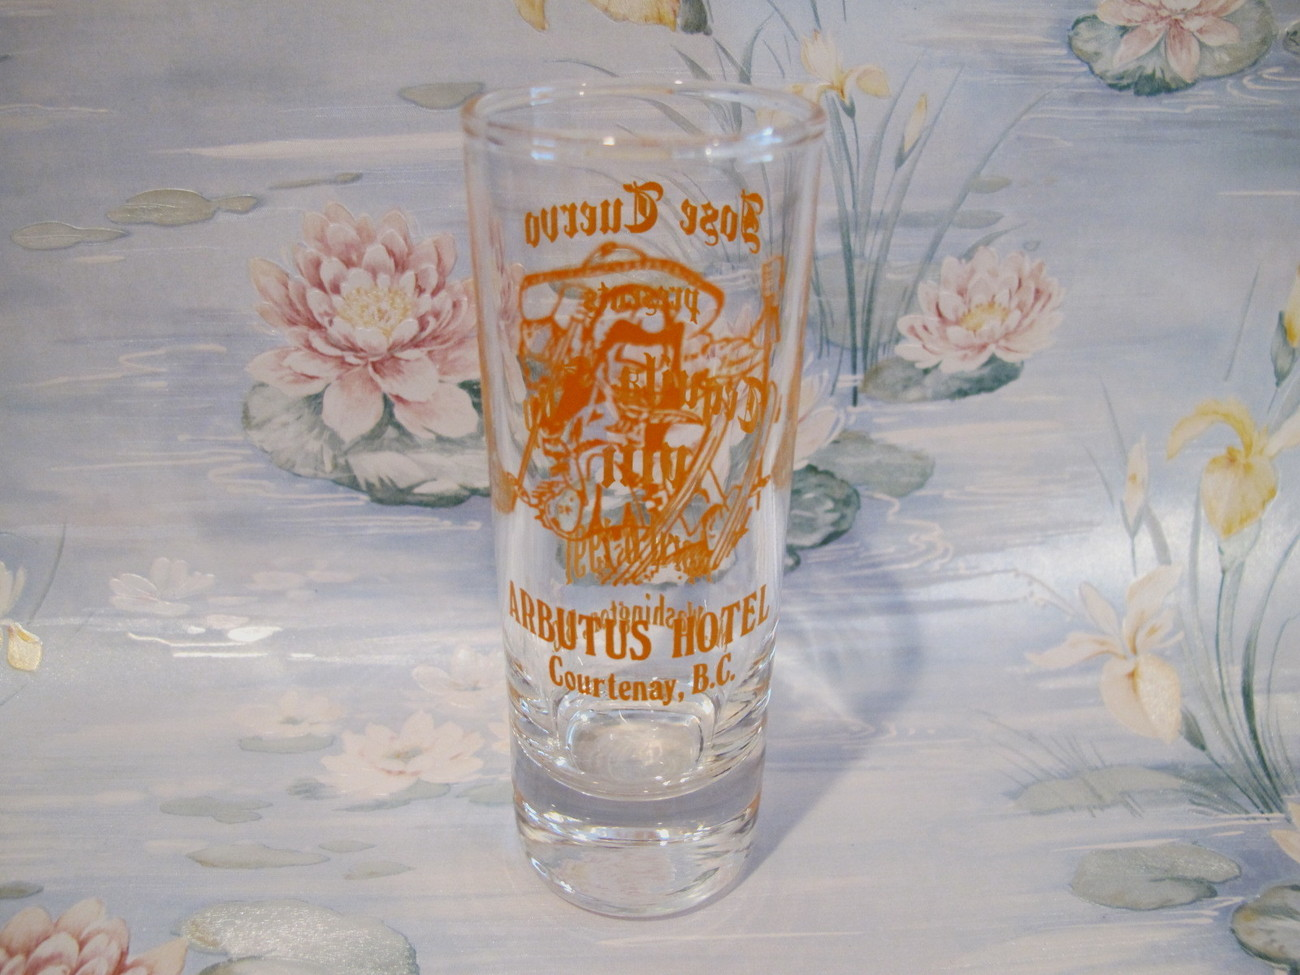 Primary image for Arbutus Hotel Courtenay BC. Shot Glass Souvenir Collectible Jose Cuervo Tequila